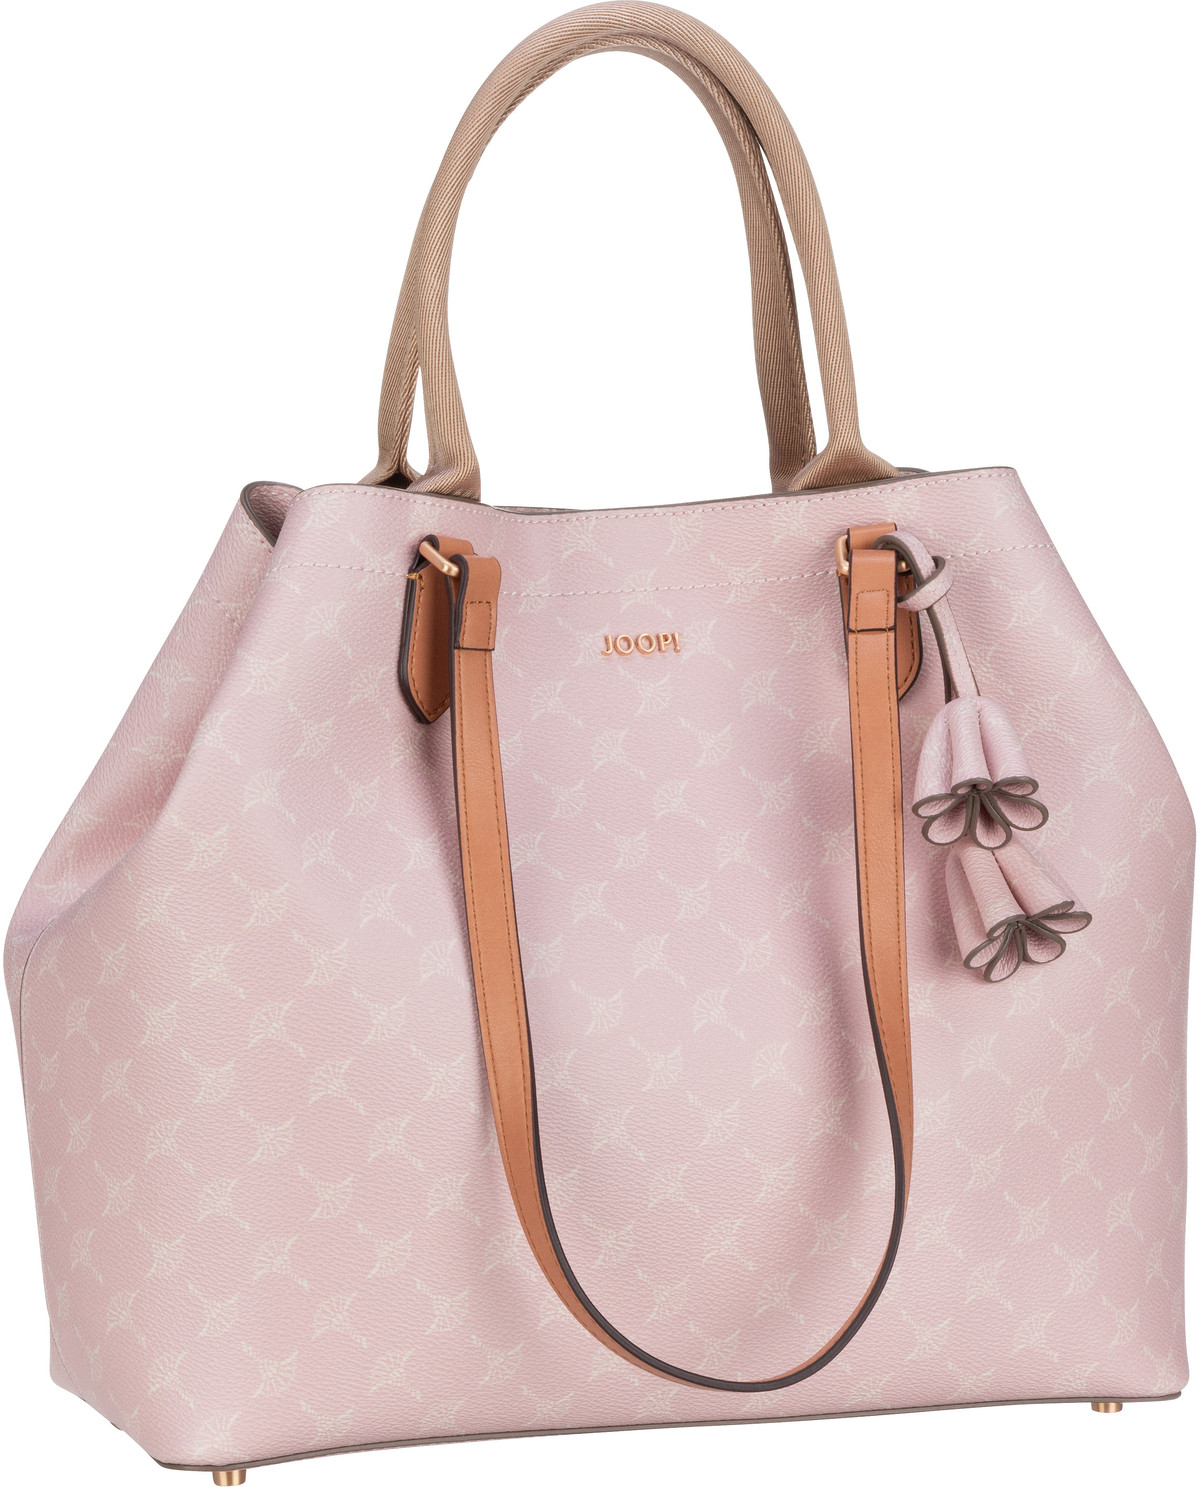 Handtasche Cortina Sara Shopper LHO Rose